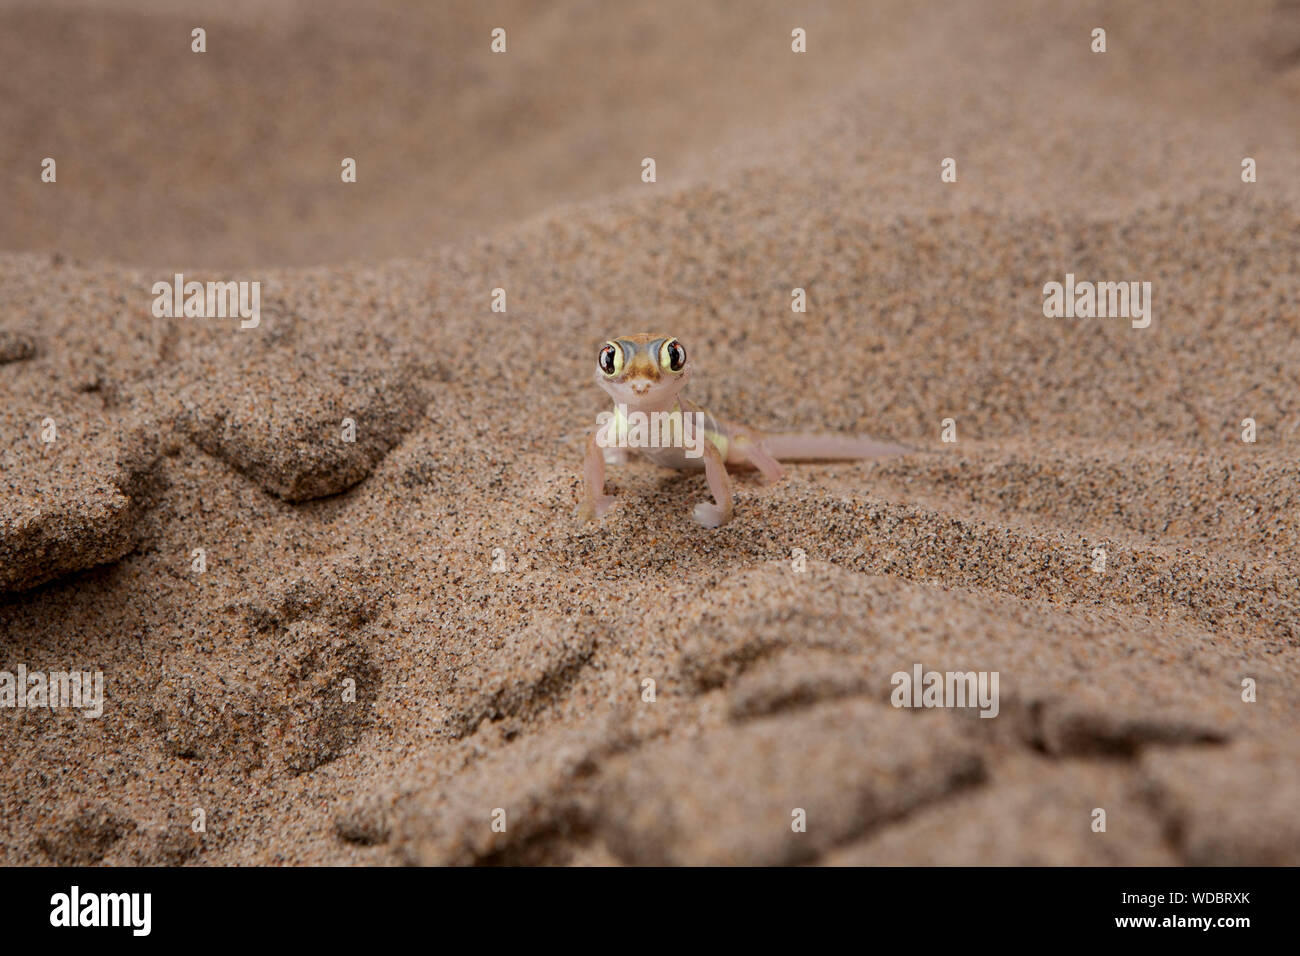 Portrait Of Namib Web-footed Gecko On Sand At Desert Stock Photo